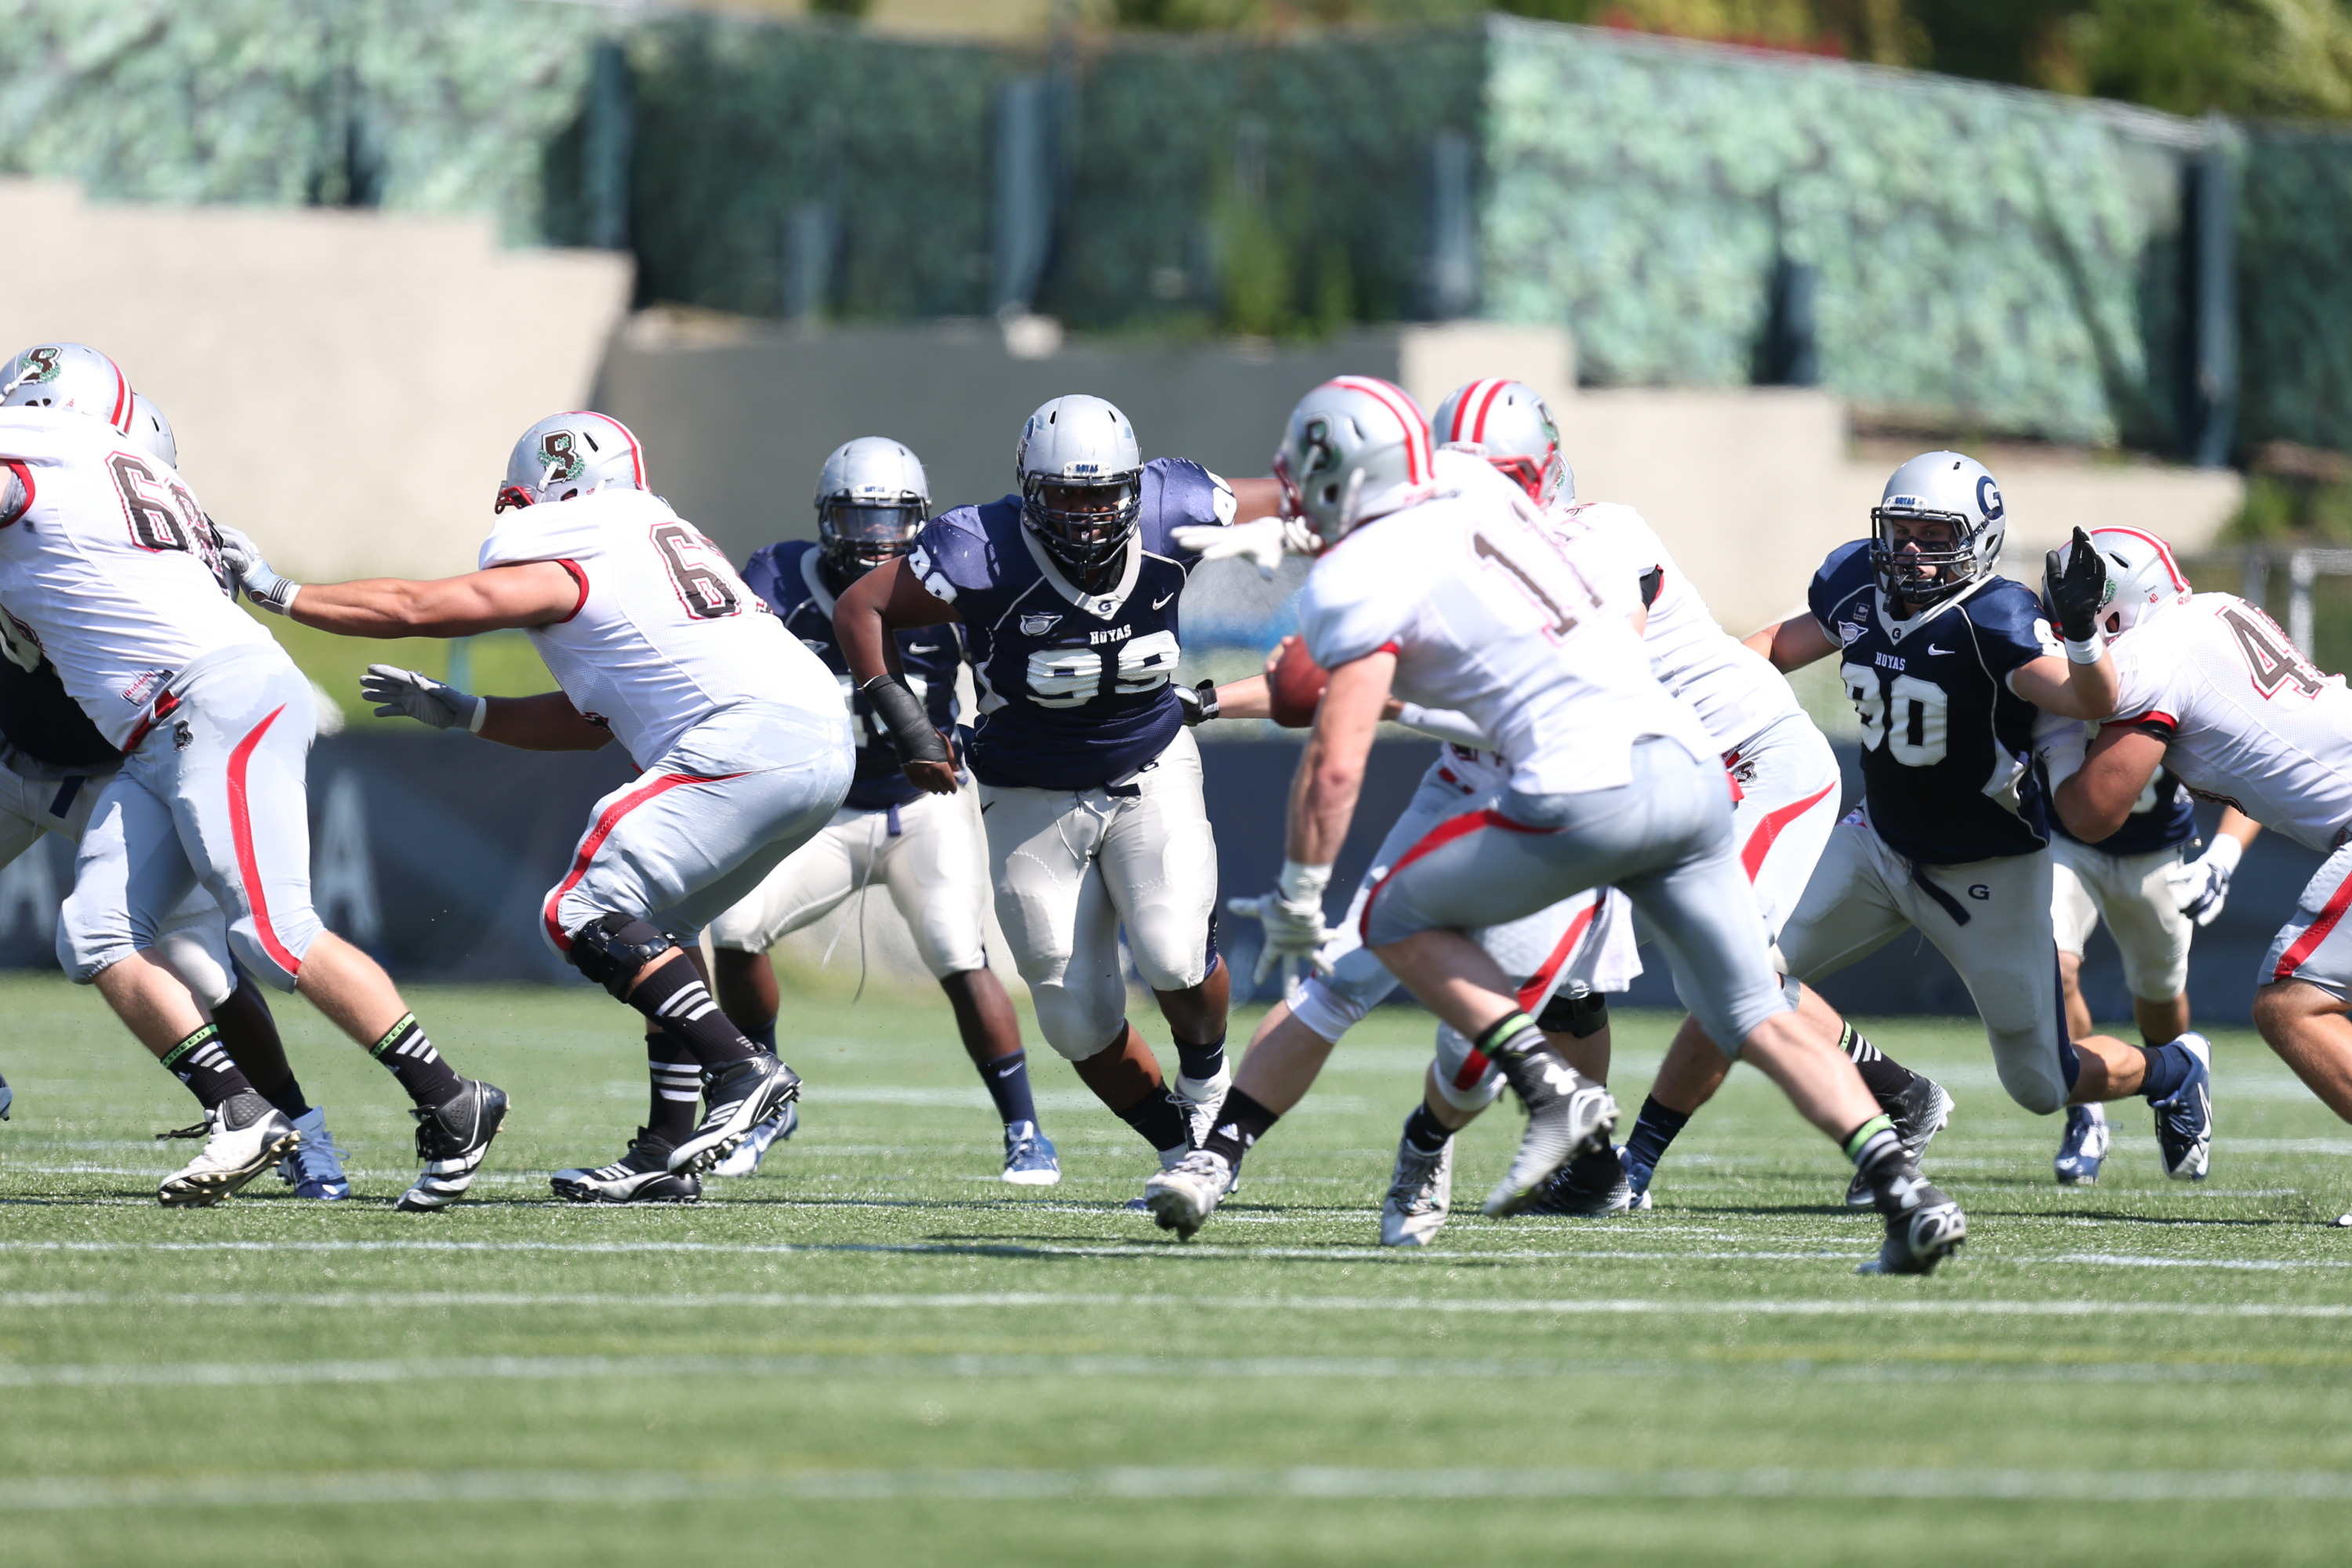 The Hoyas defense will be charged with stopping the Bucknell offense for Homecoming.